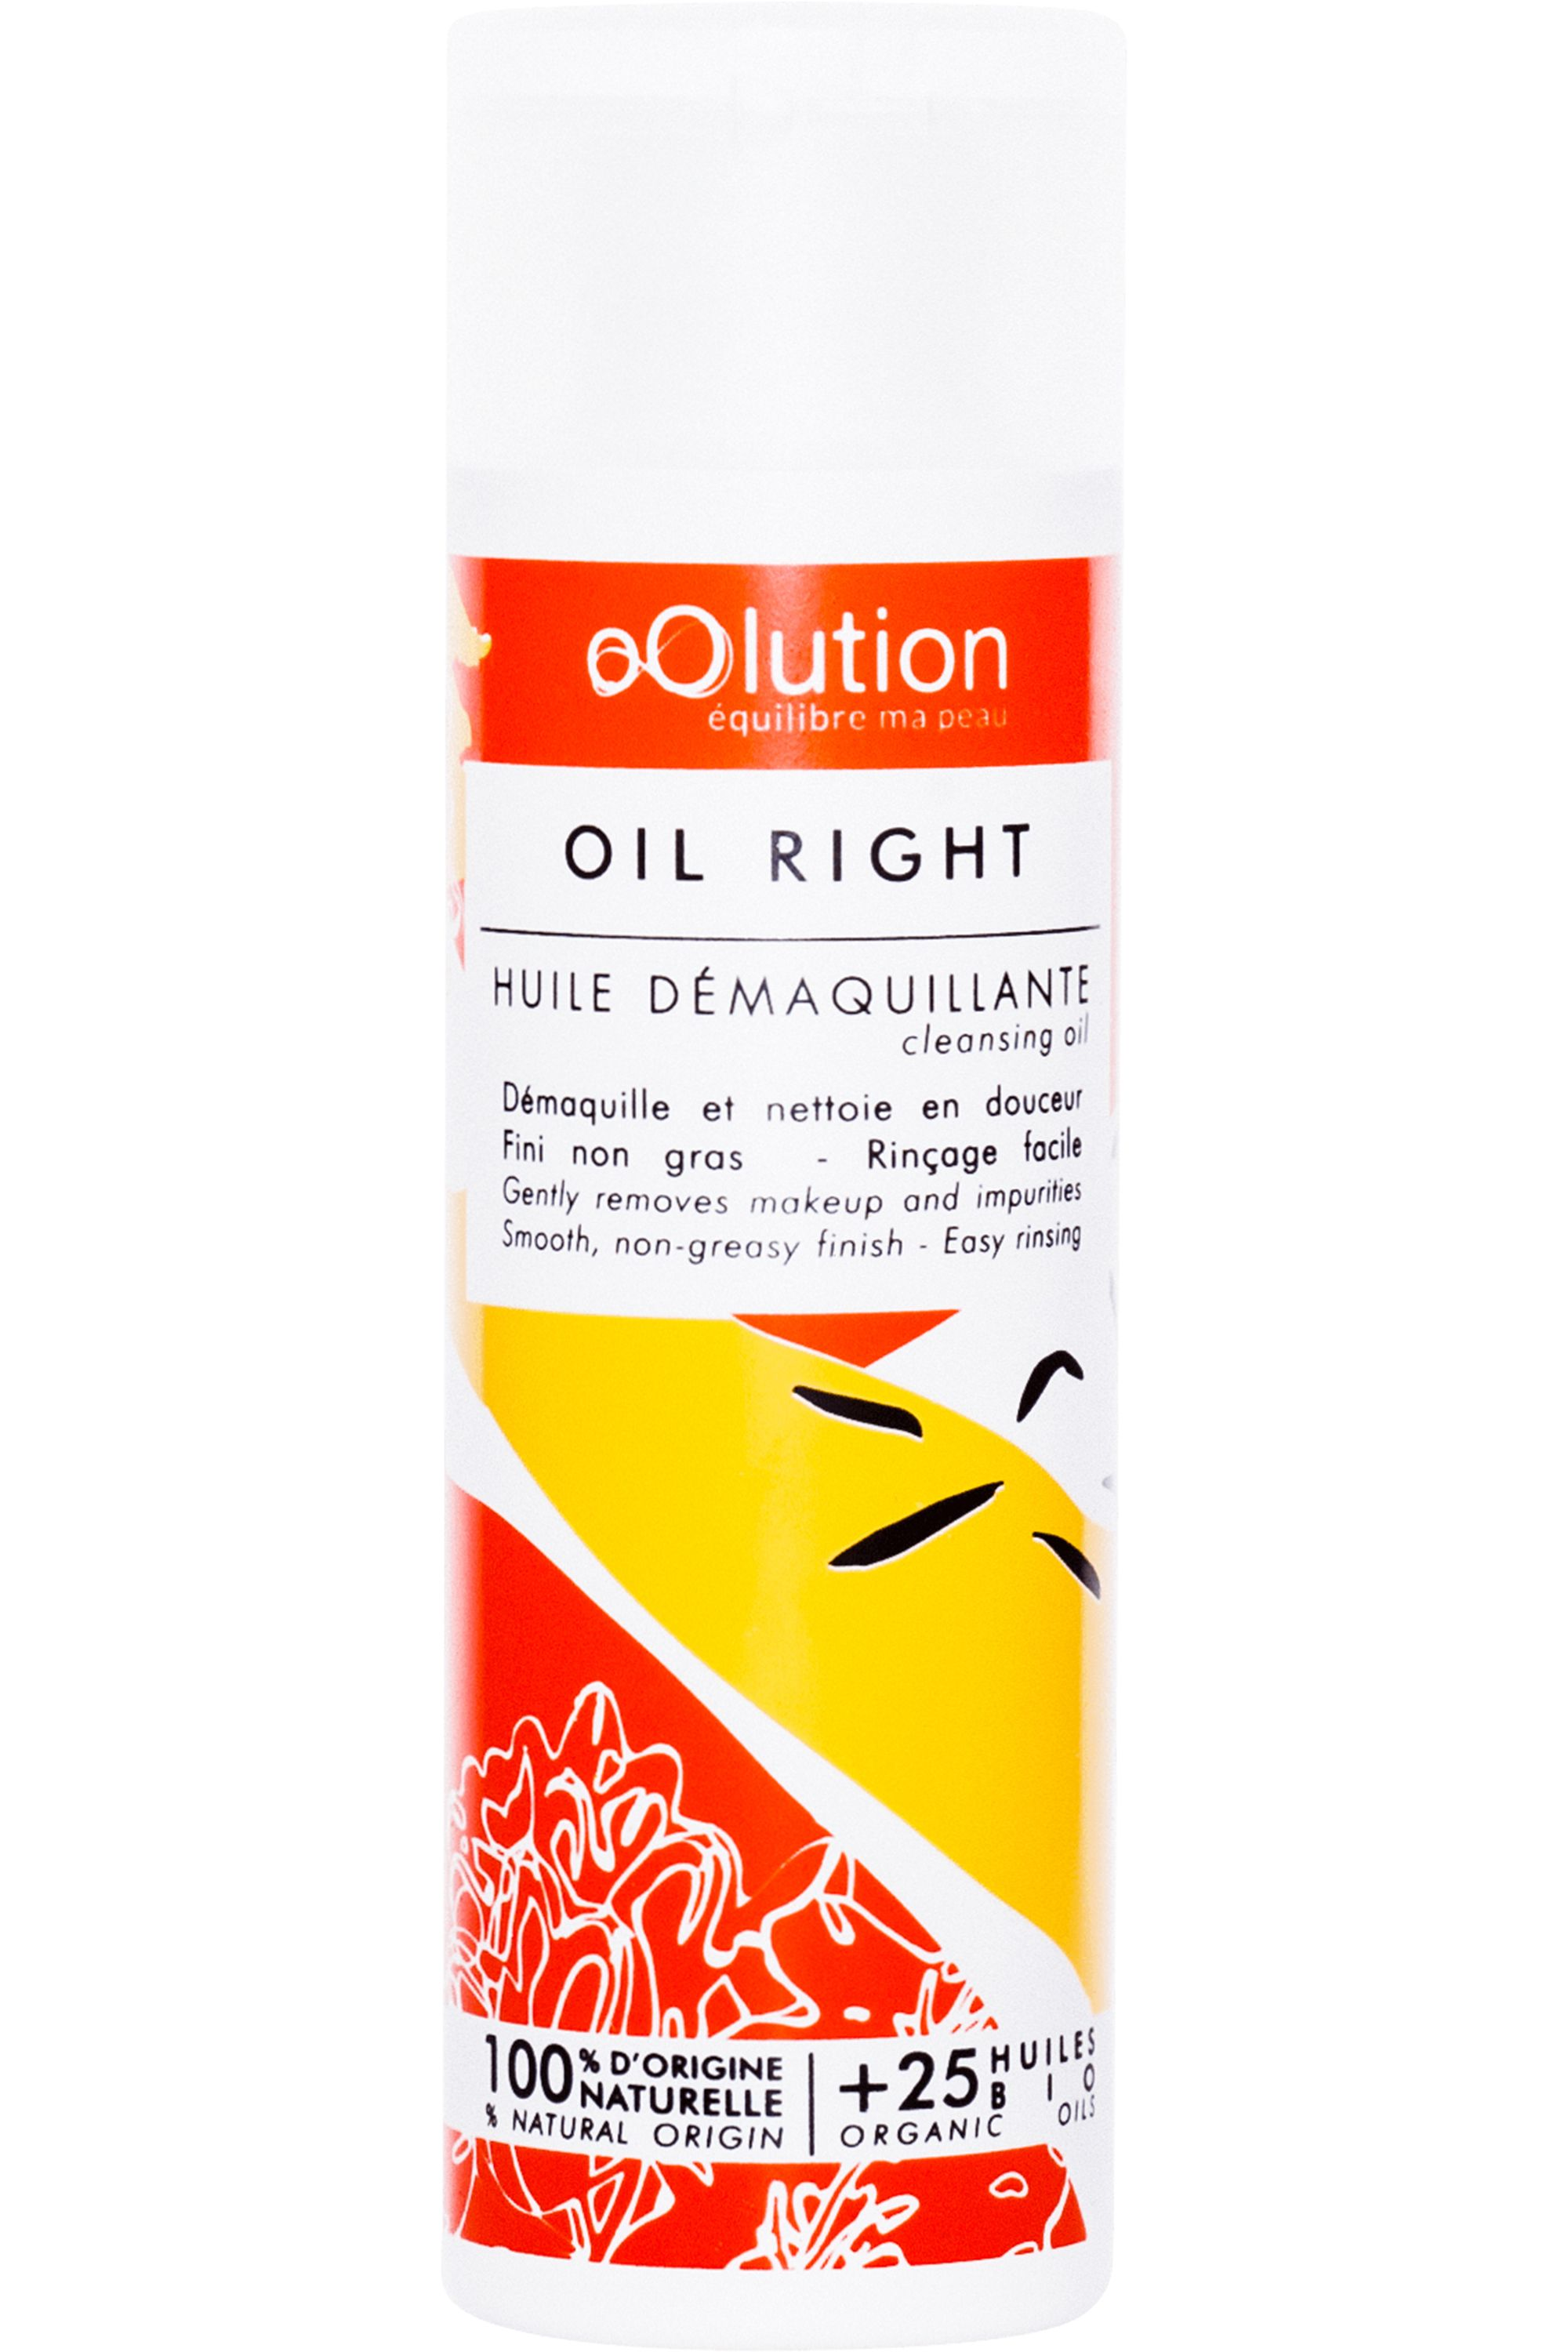 Blissim : Oolution - Huile démaquillante bio Oil Right - Huile démaquillante bio Oil Right